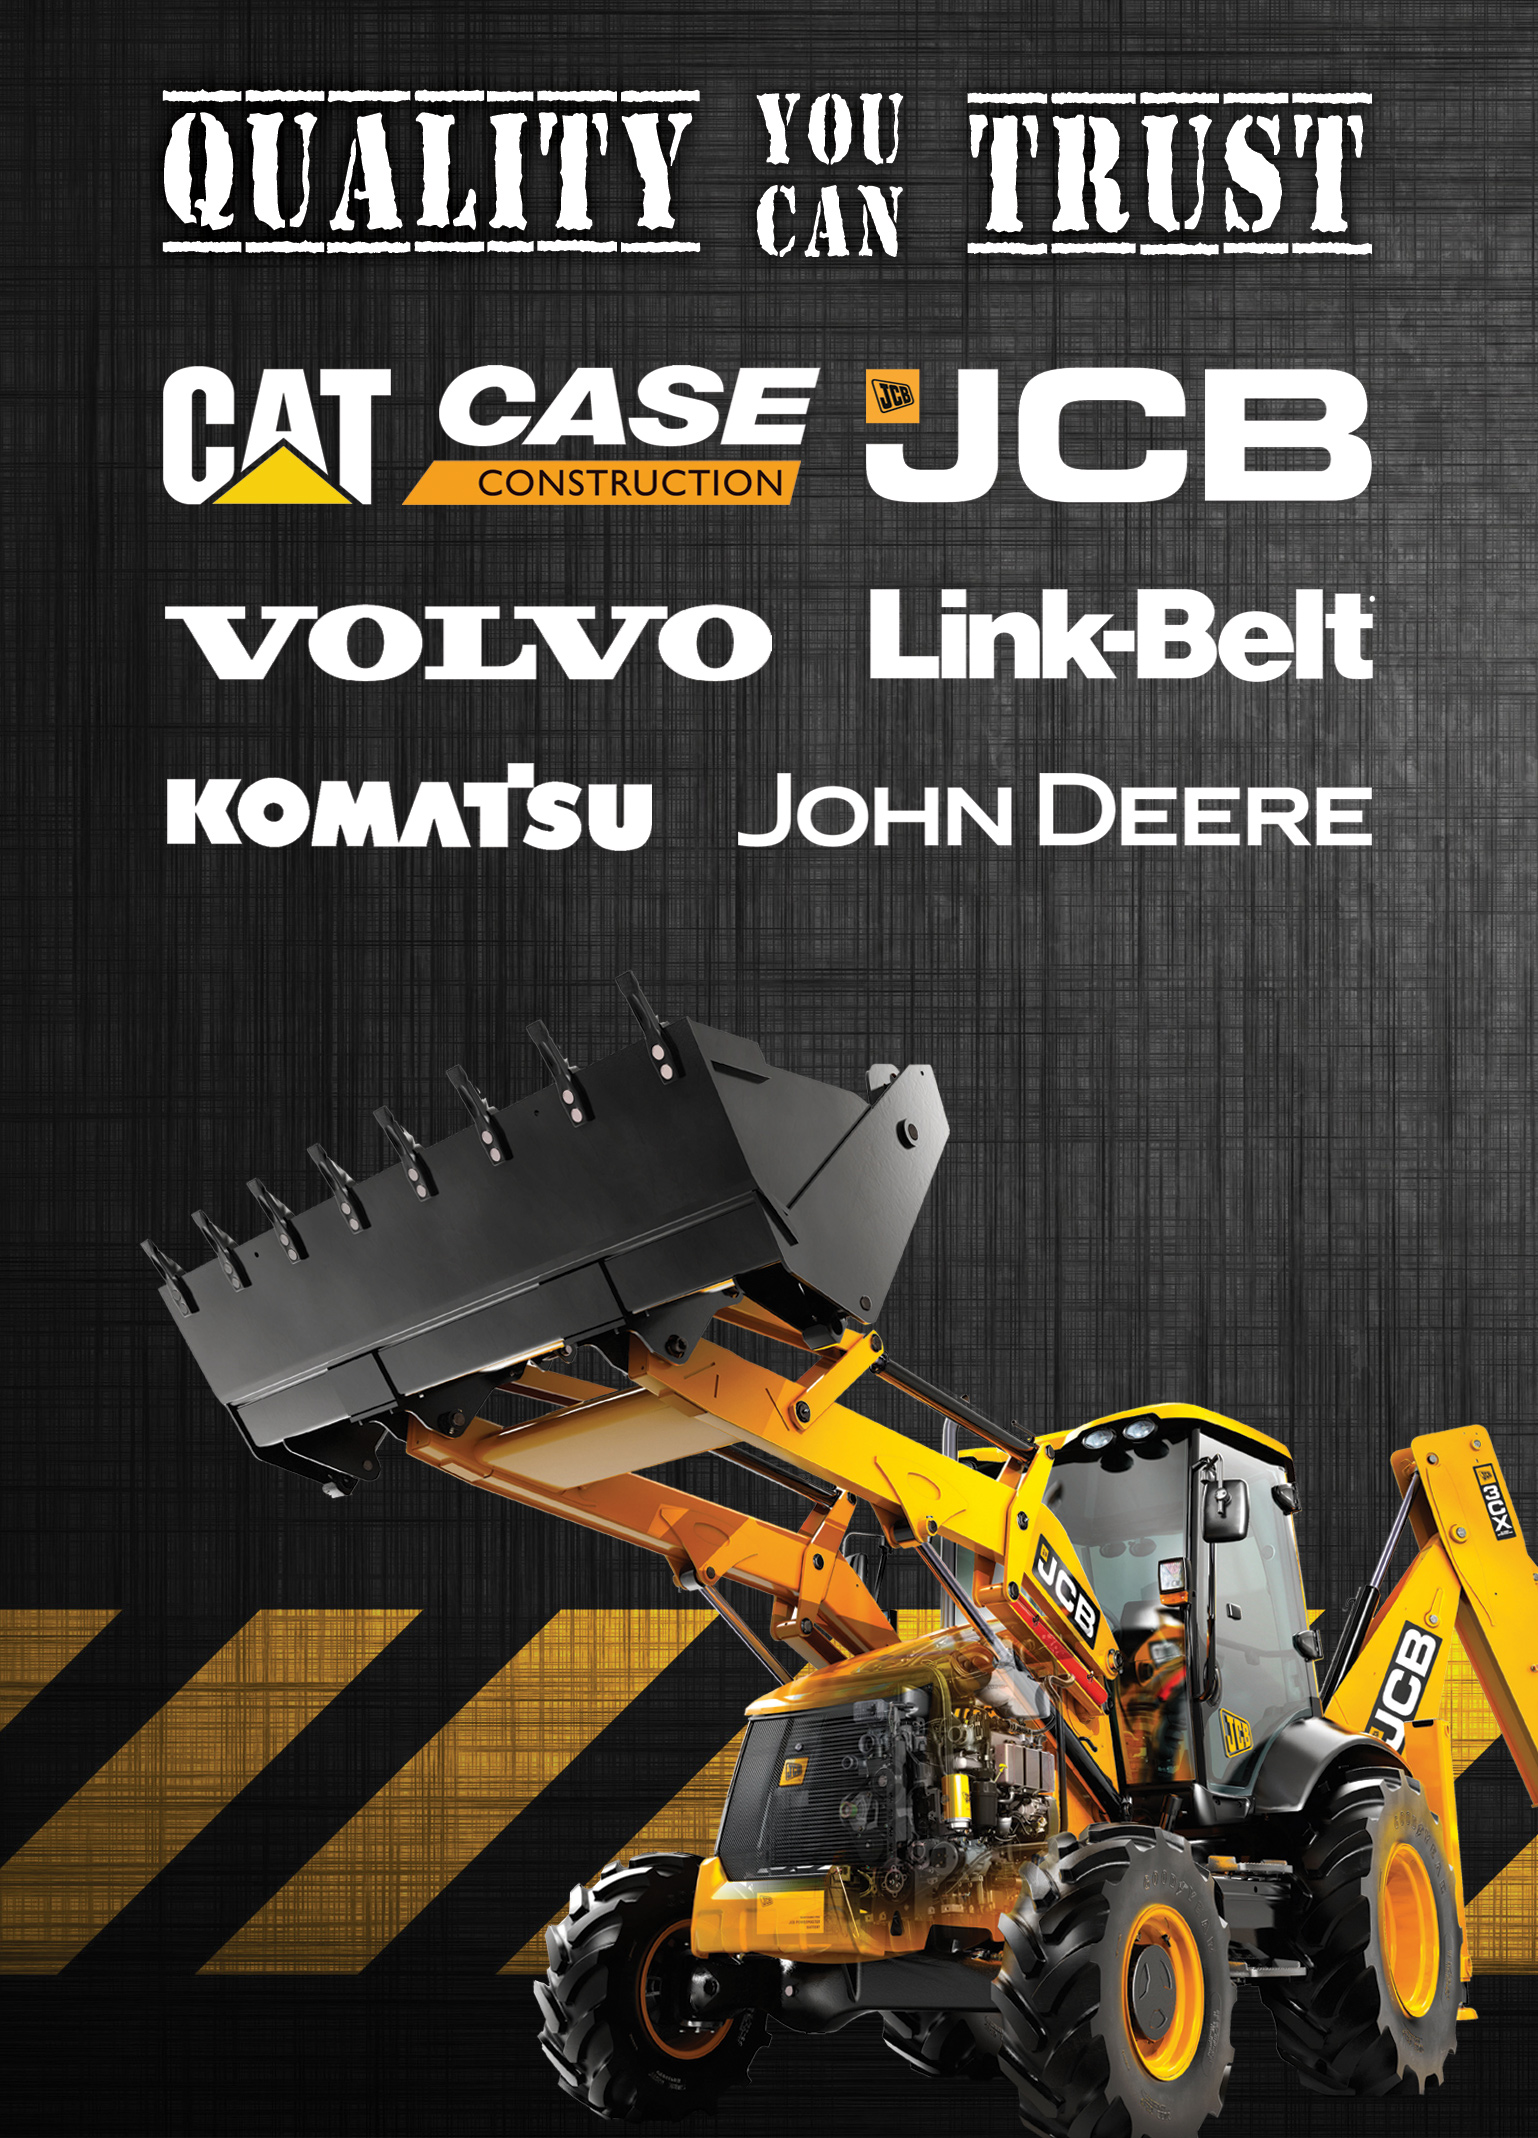 Construction Equipment Flyer Graphic Design